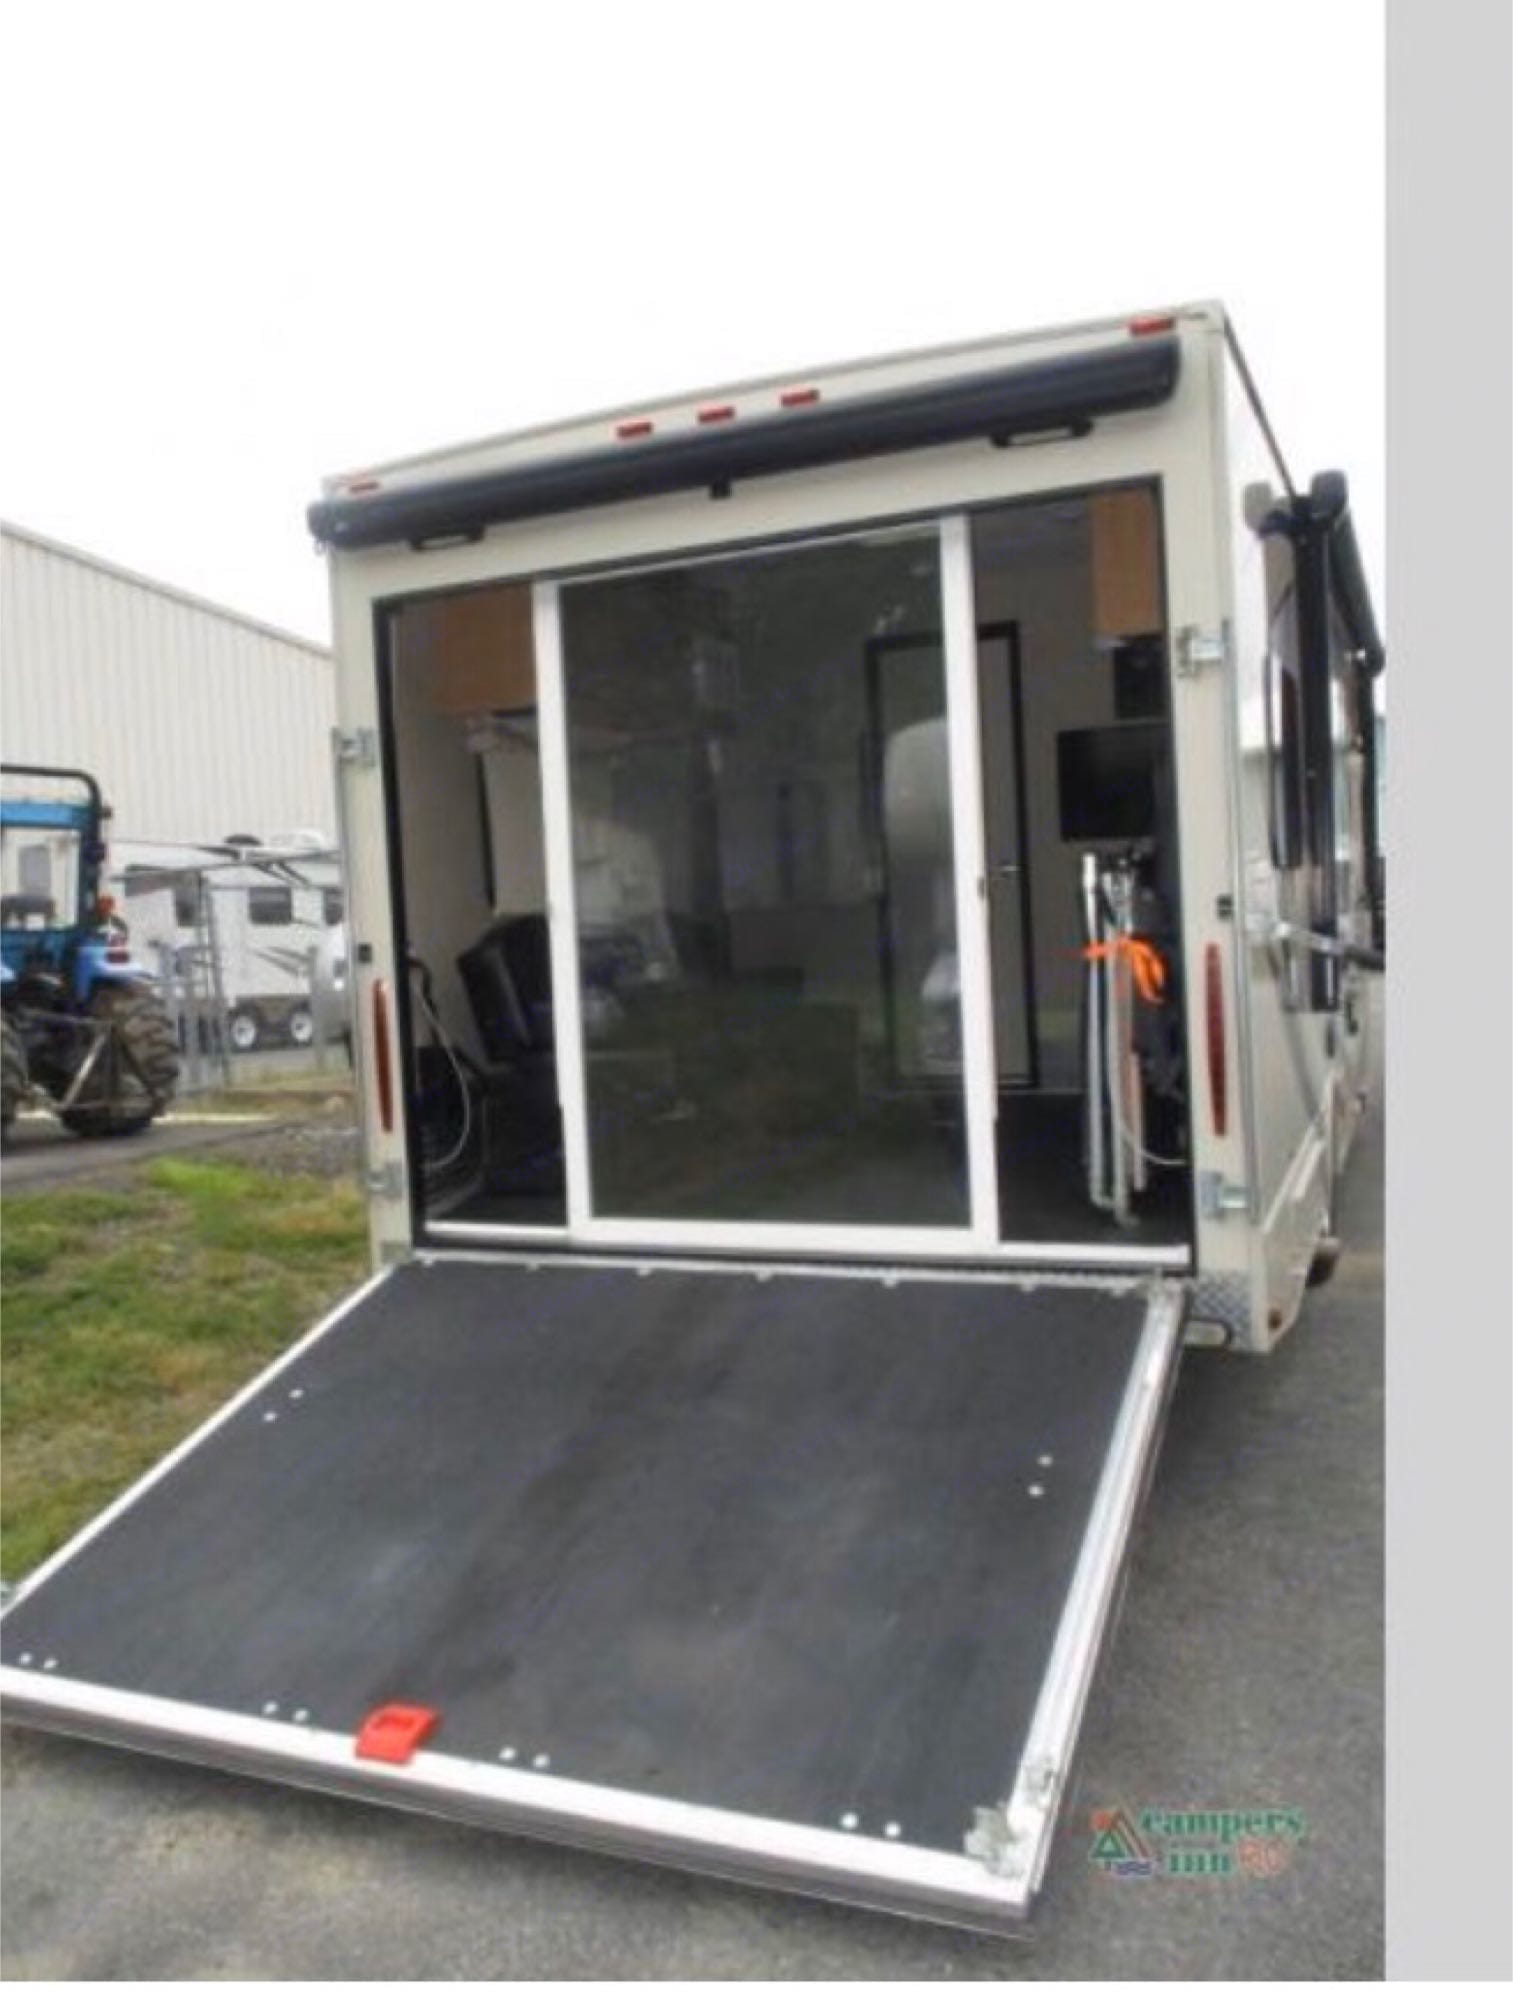 ramp into the toy hauler area, this ramp easily converts to a deck. The exterior light, awning and sliding lexan doors make for a relaxing space. Thor Motor Coach Outlaw toy hauler 2017